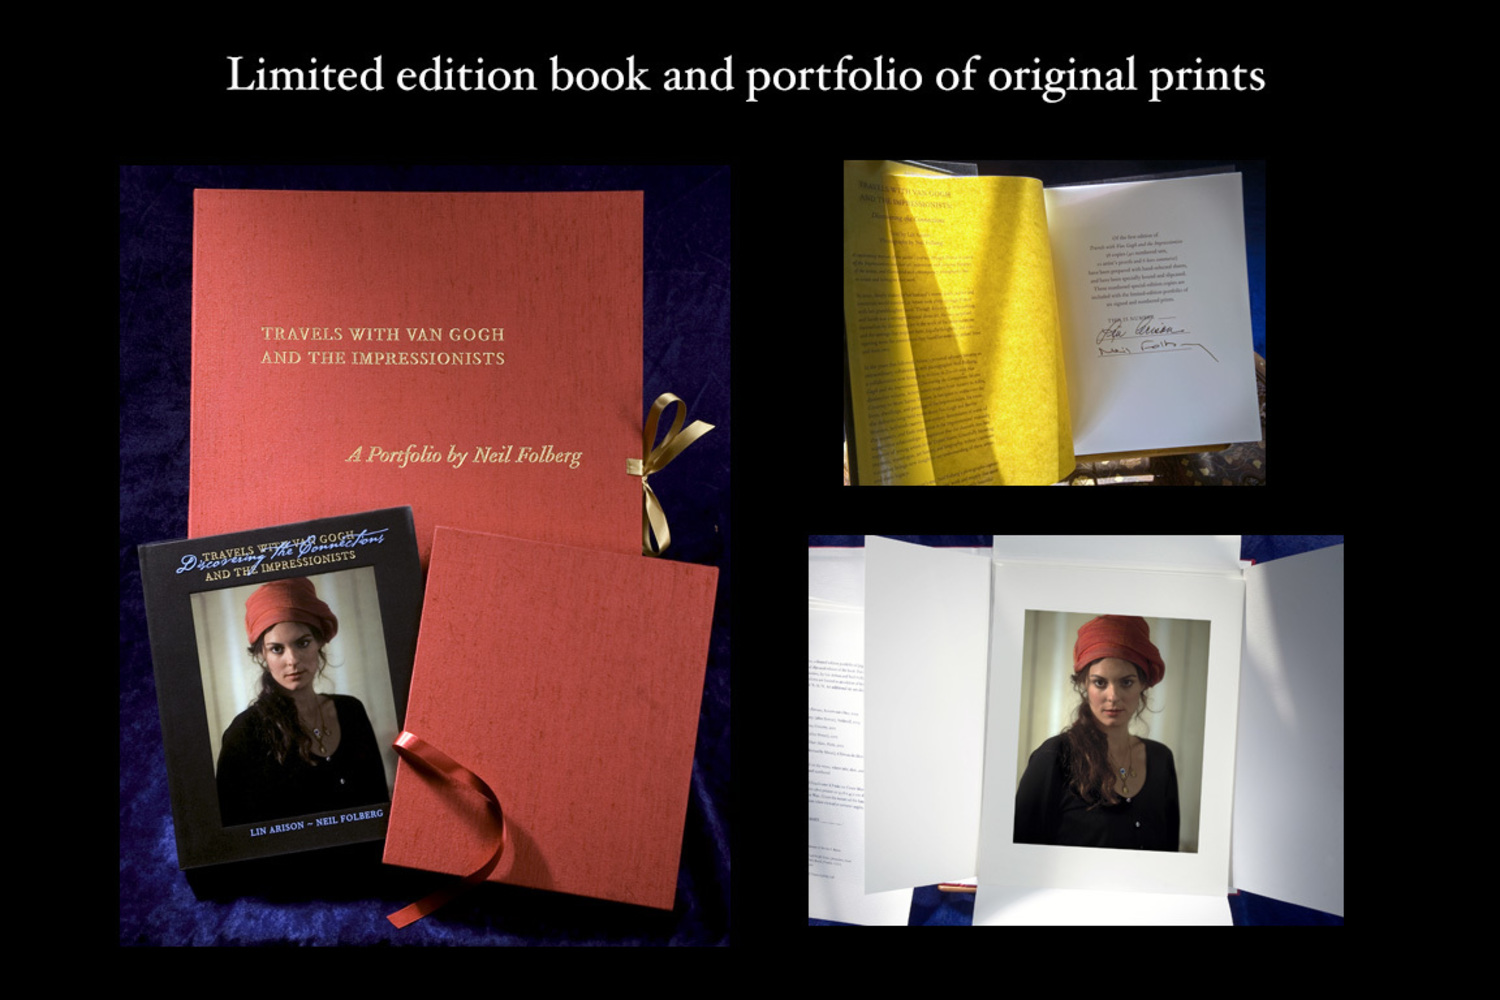 Travels with Van Gogh & the Impressionists (portfolio/special edition book)